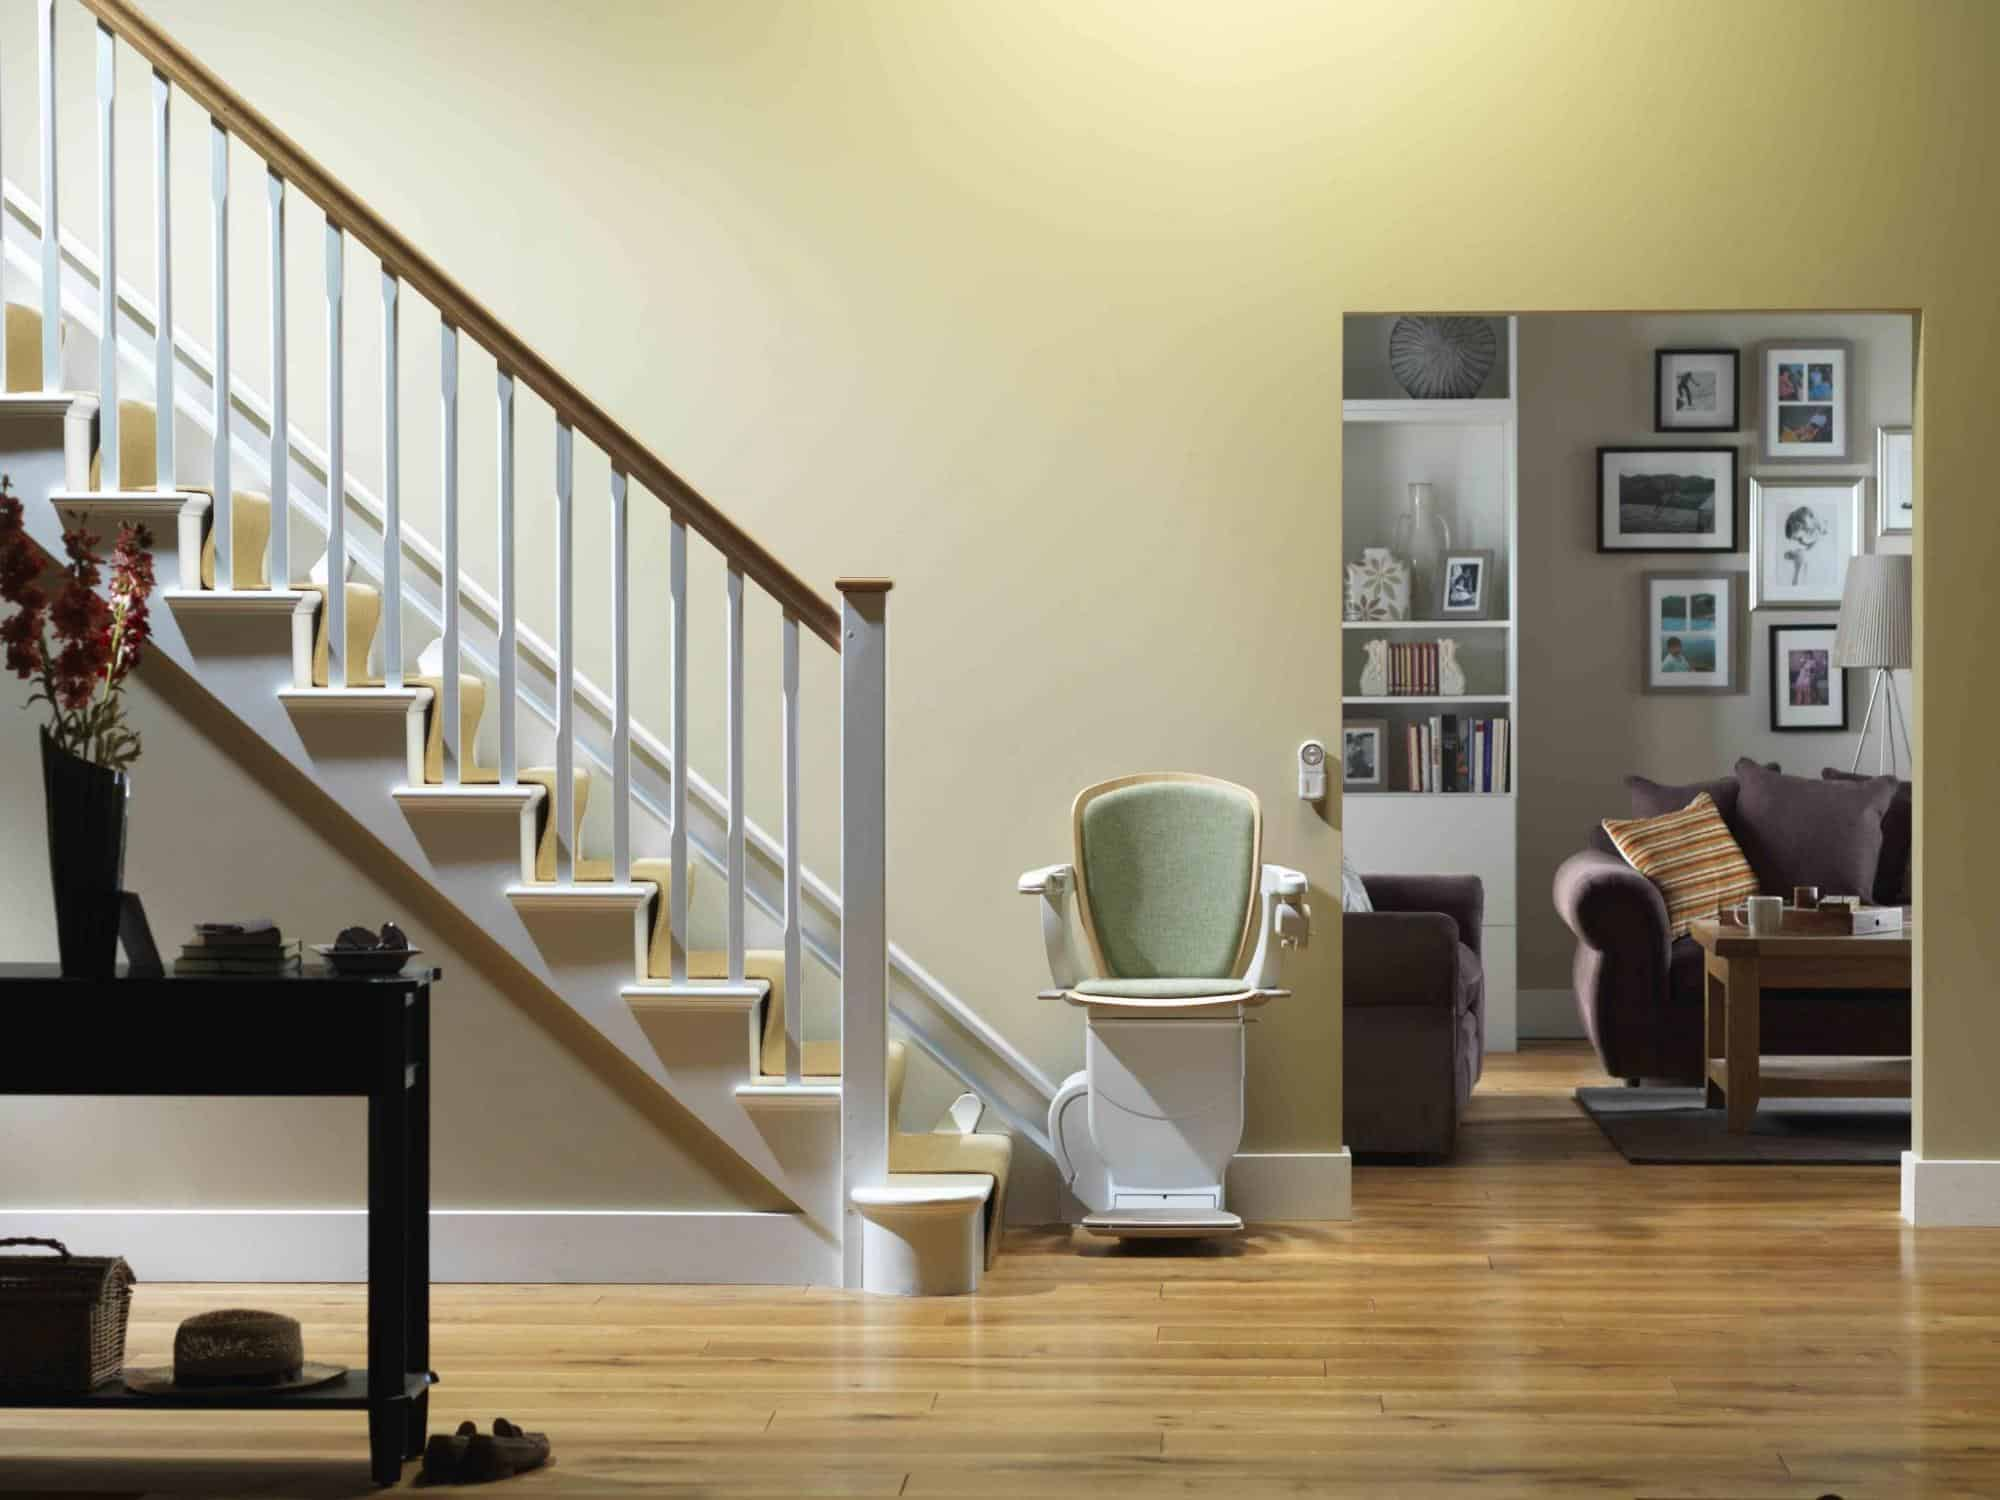 Stannah Stairlift Rental Liverpool - Stair Lifts - Stannah ...